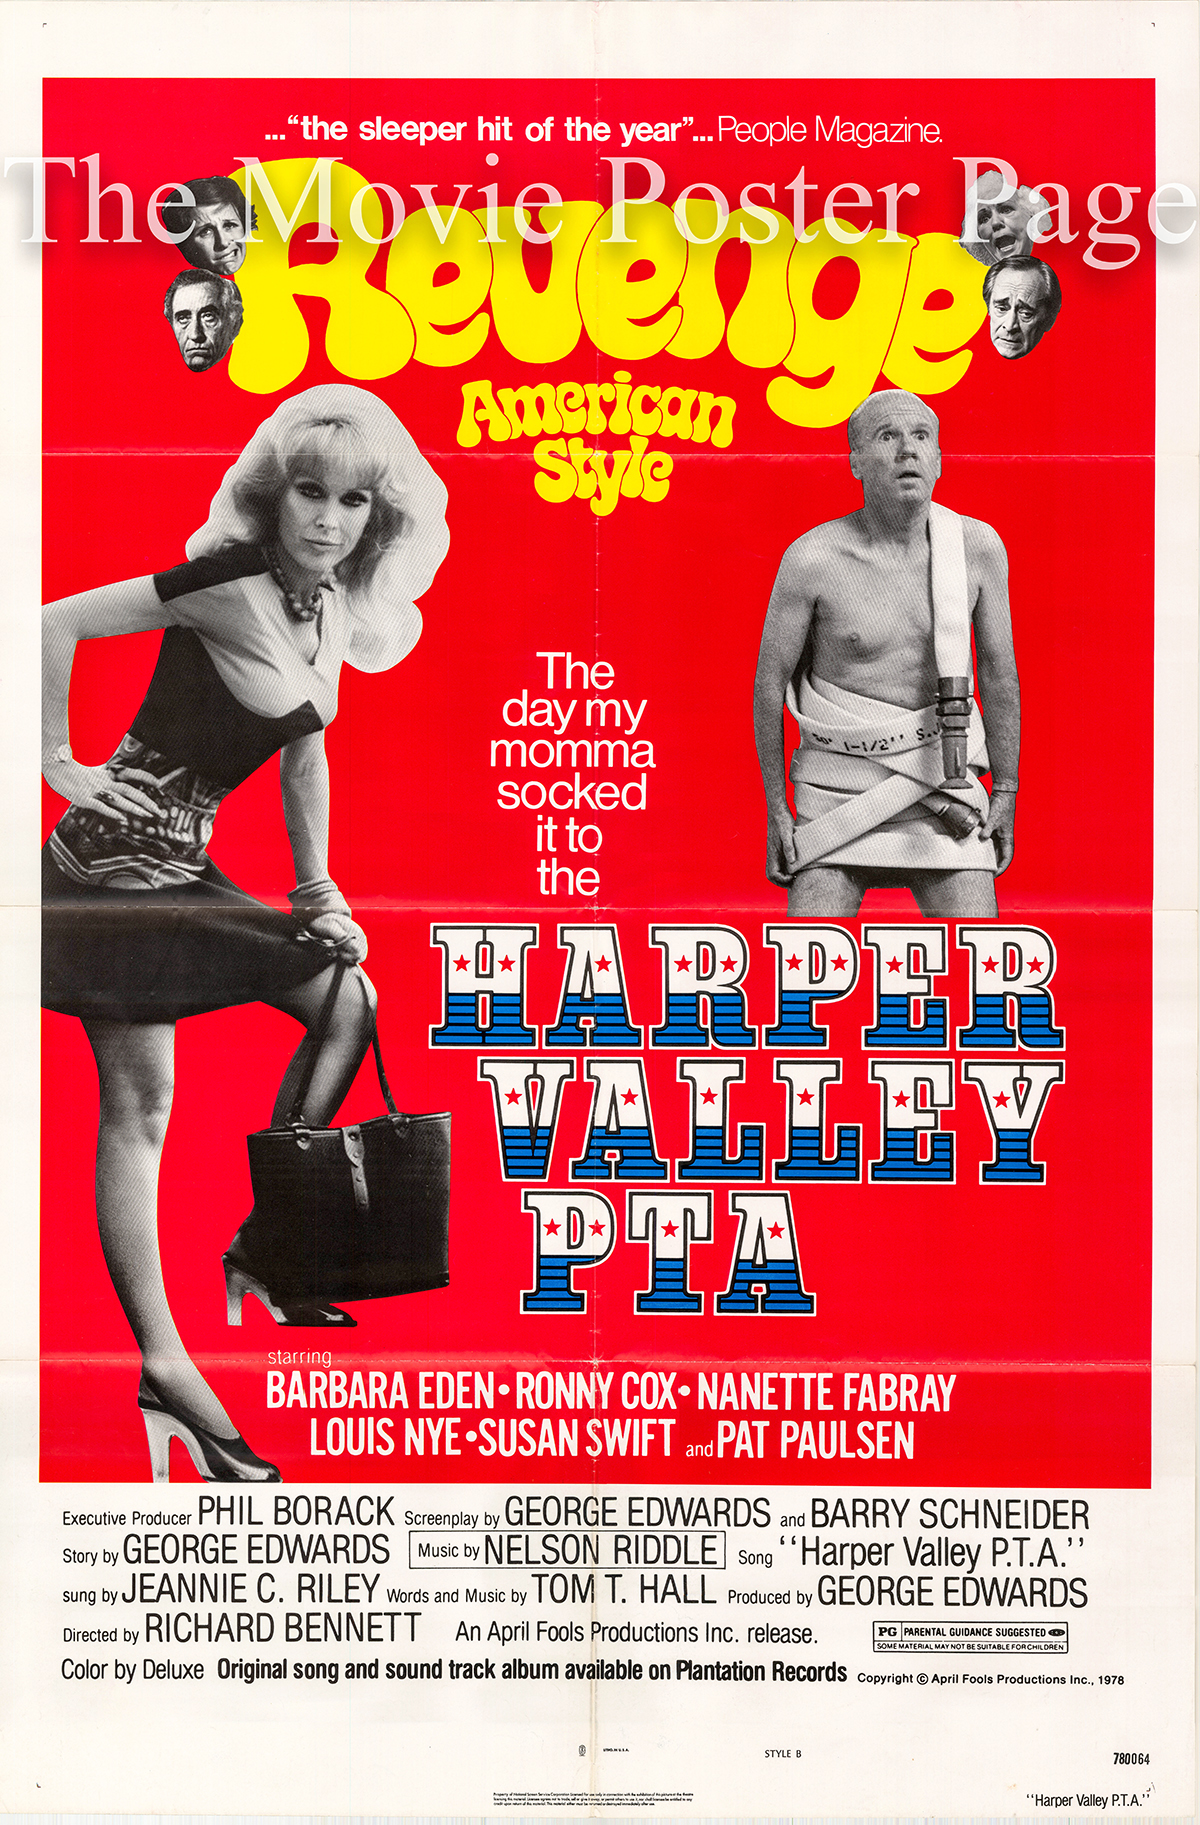 Pictured is a US promotional one-sheet poster for the 1978 Richard Bennett film Harper Valley P.T.A. starring Barbara Eden as Stella Johnson.